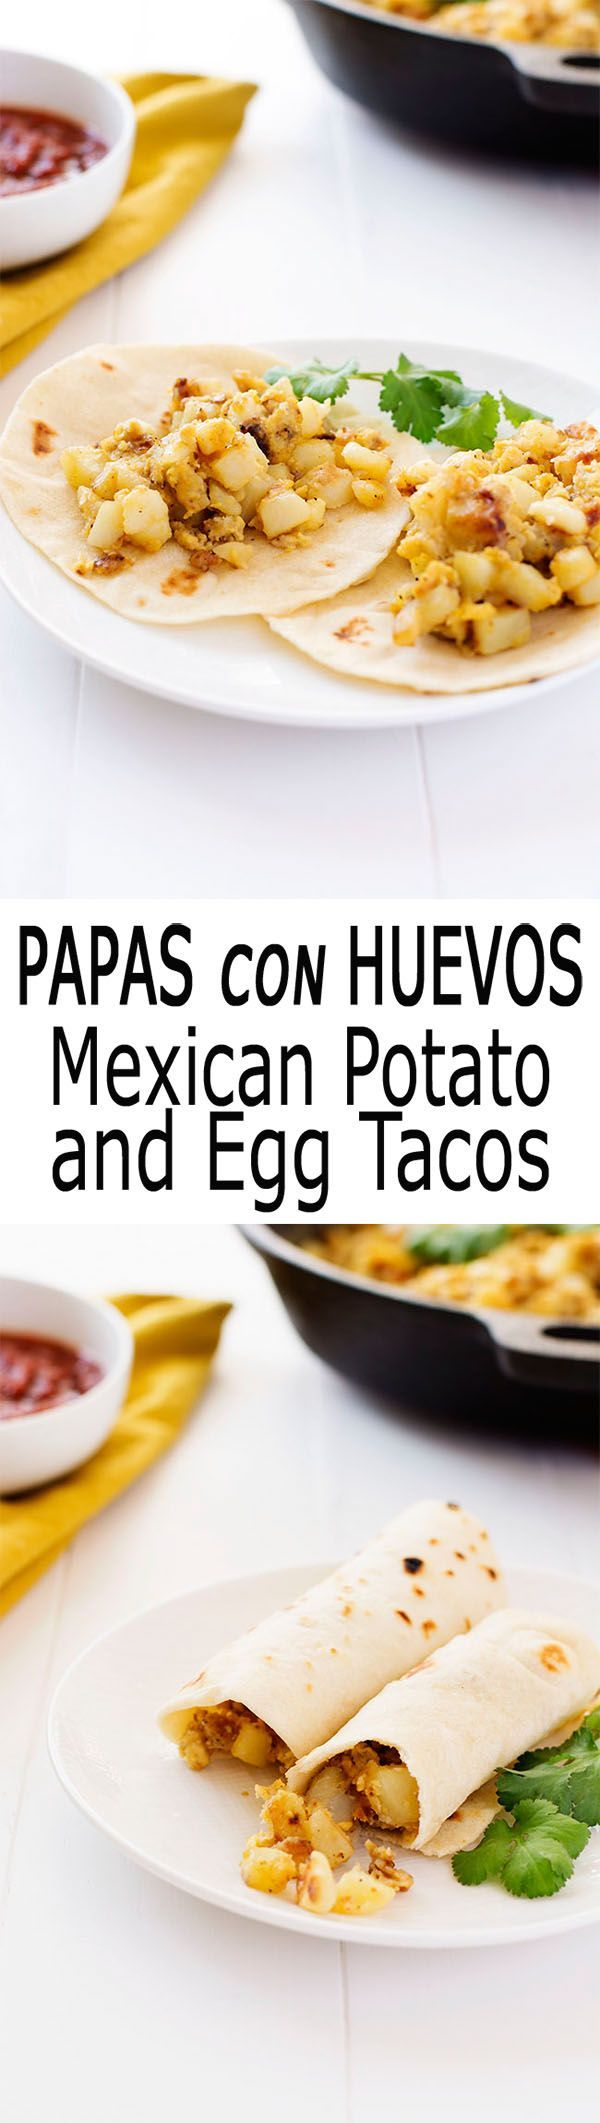 Papas con Huevos is Spanish for potatoes with eggs. Abuela's recipes for the best breakfast tacos! | Kitchen Gidget